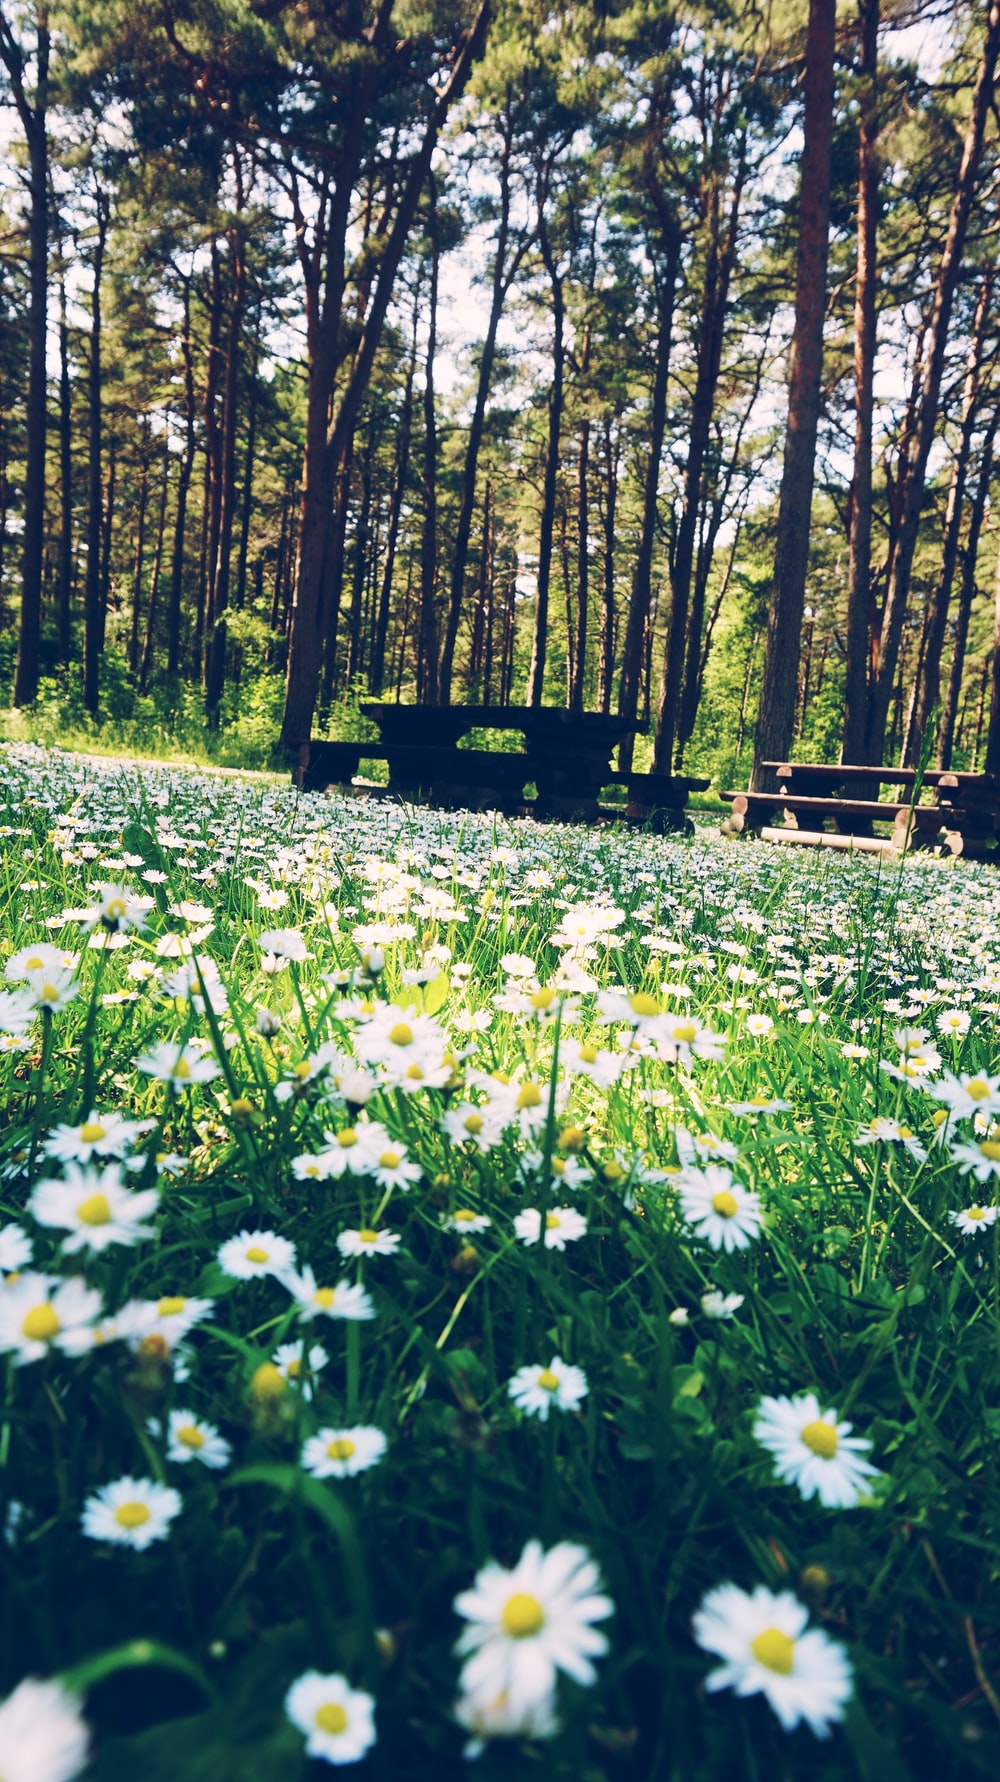 white flowers on green grass field near brown wooden bench during daytime